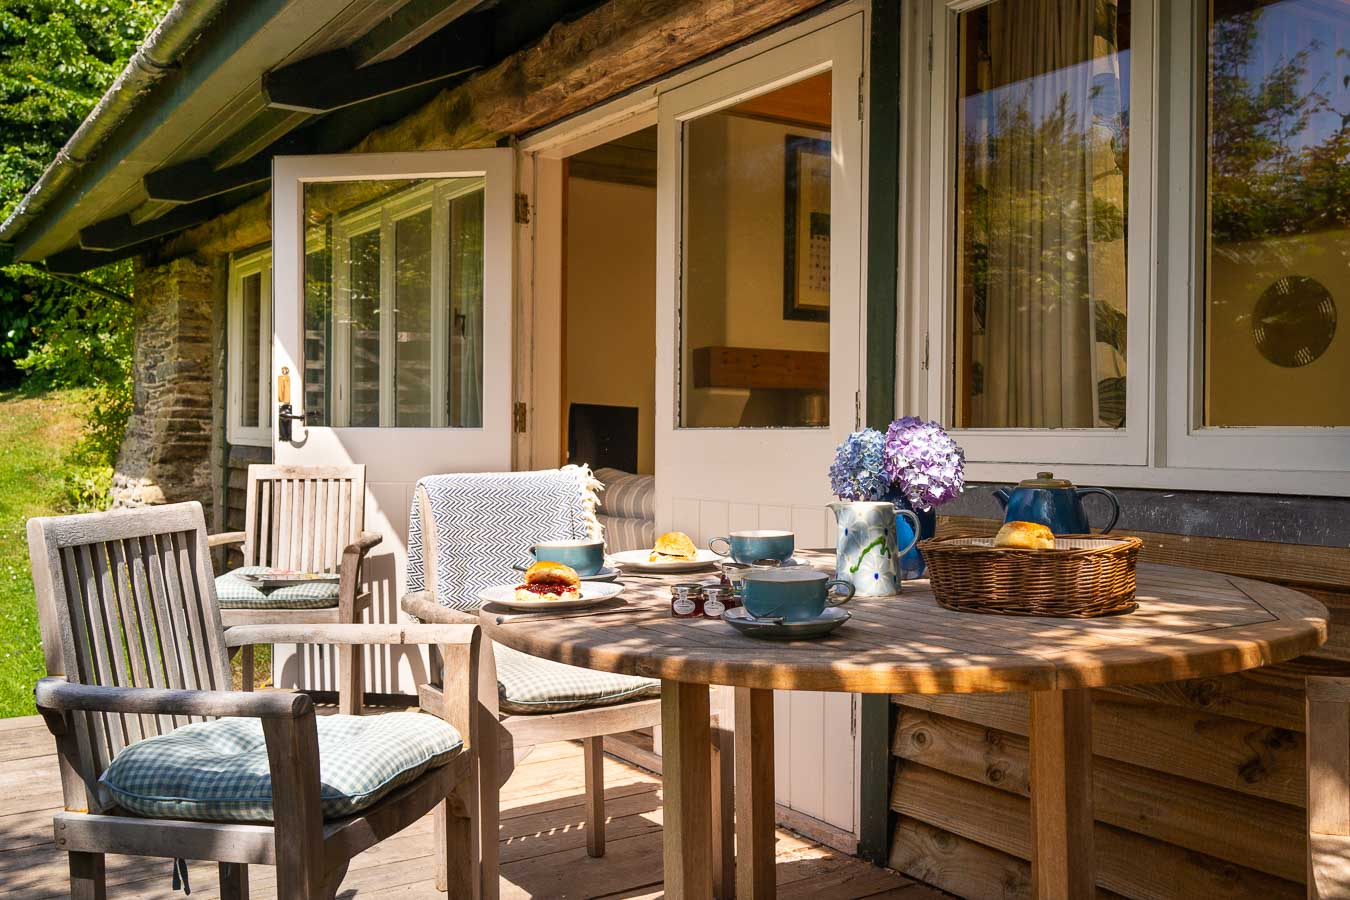 The west facing private decking situated in the Linhay cottage's garden just off the open plan living room. Complete with teak garden furniture at Flear Farm cottages.